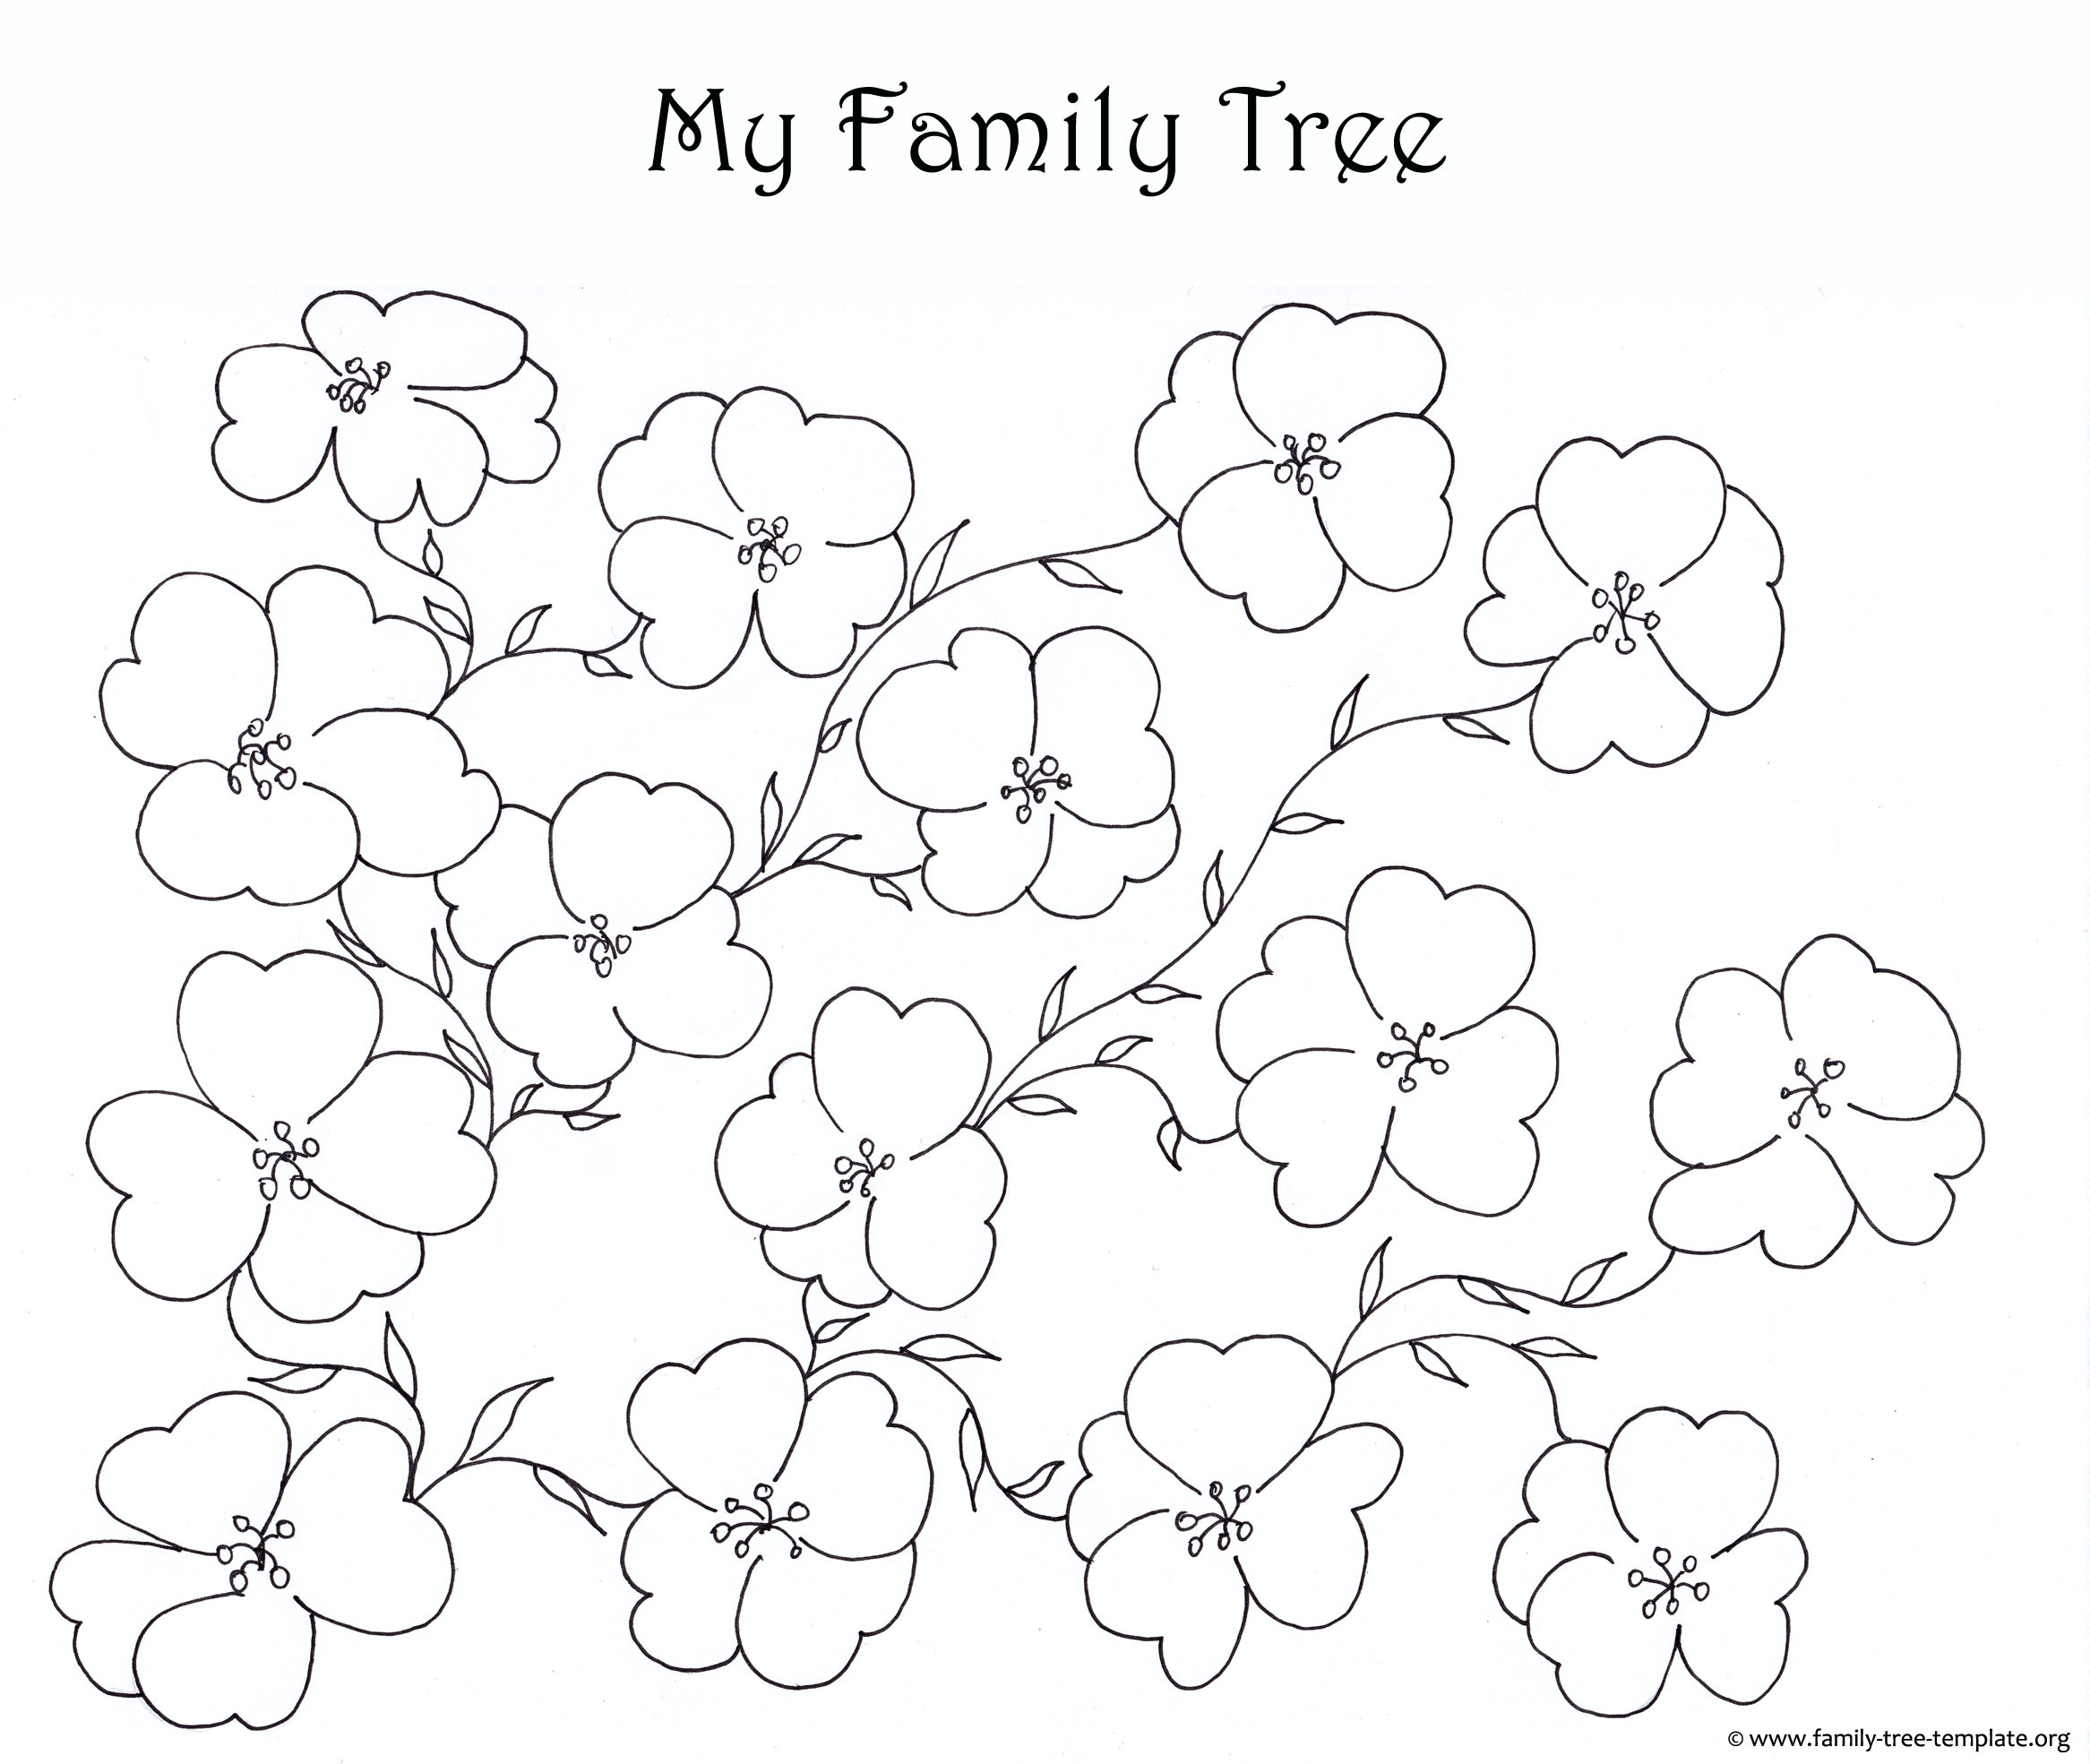 Worksheets Family Tree Worksheet For Kids make a family tree easily with these free ancestry charts blank for kids to color flower theme